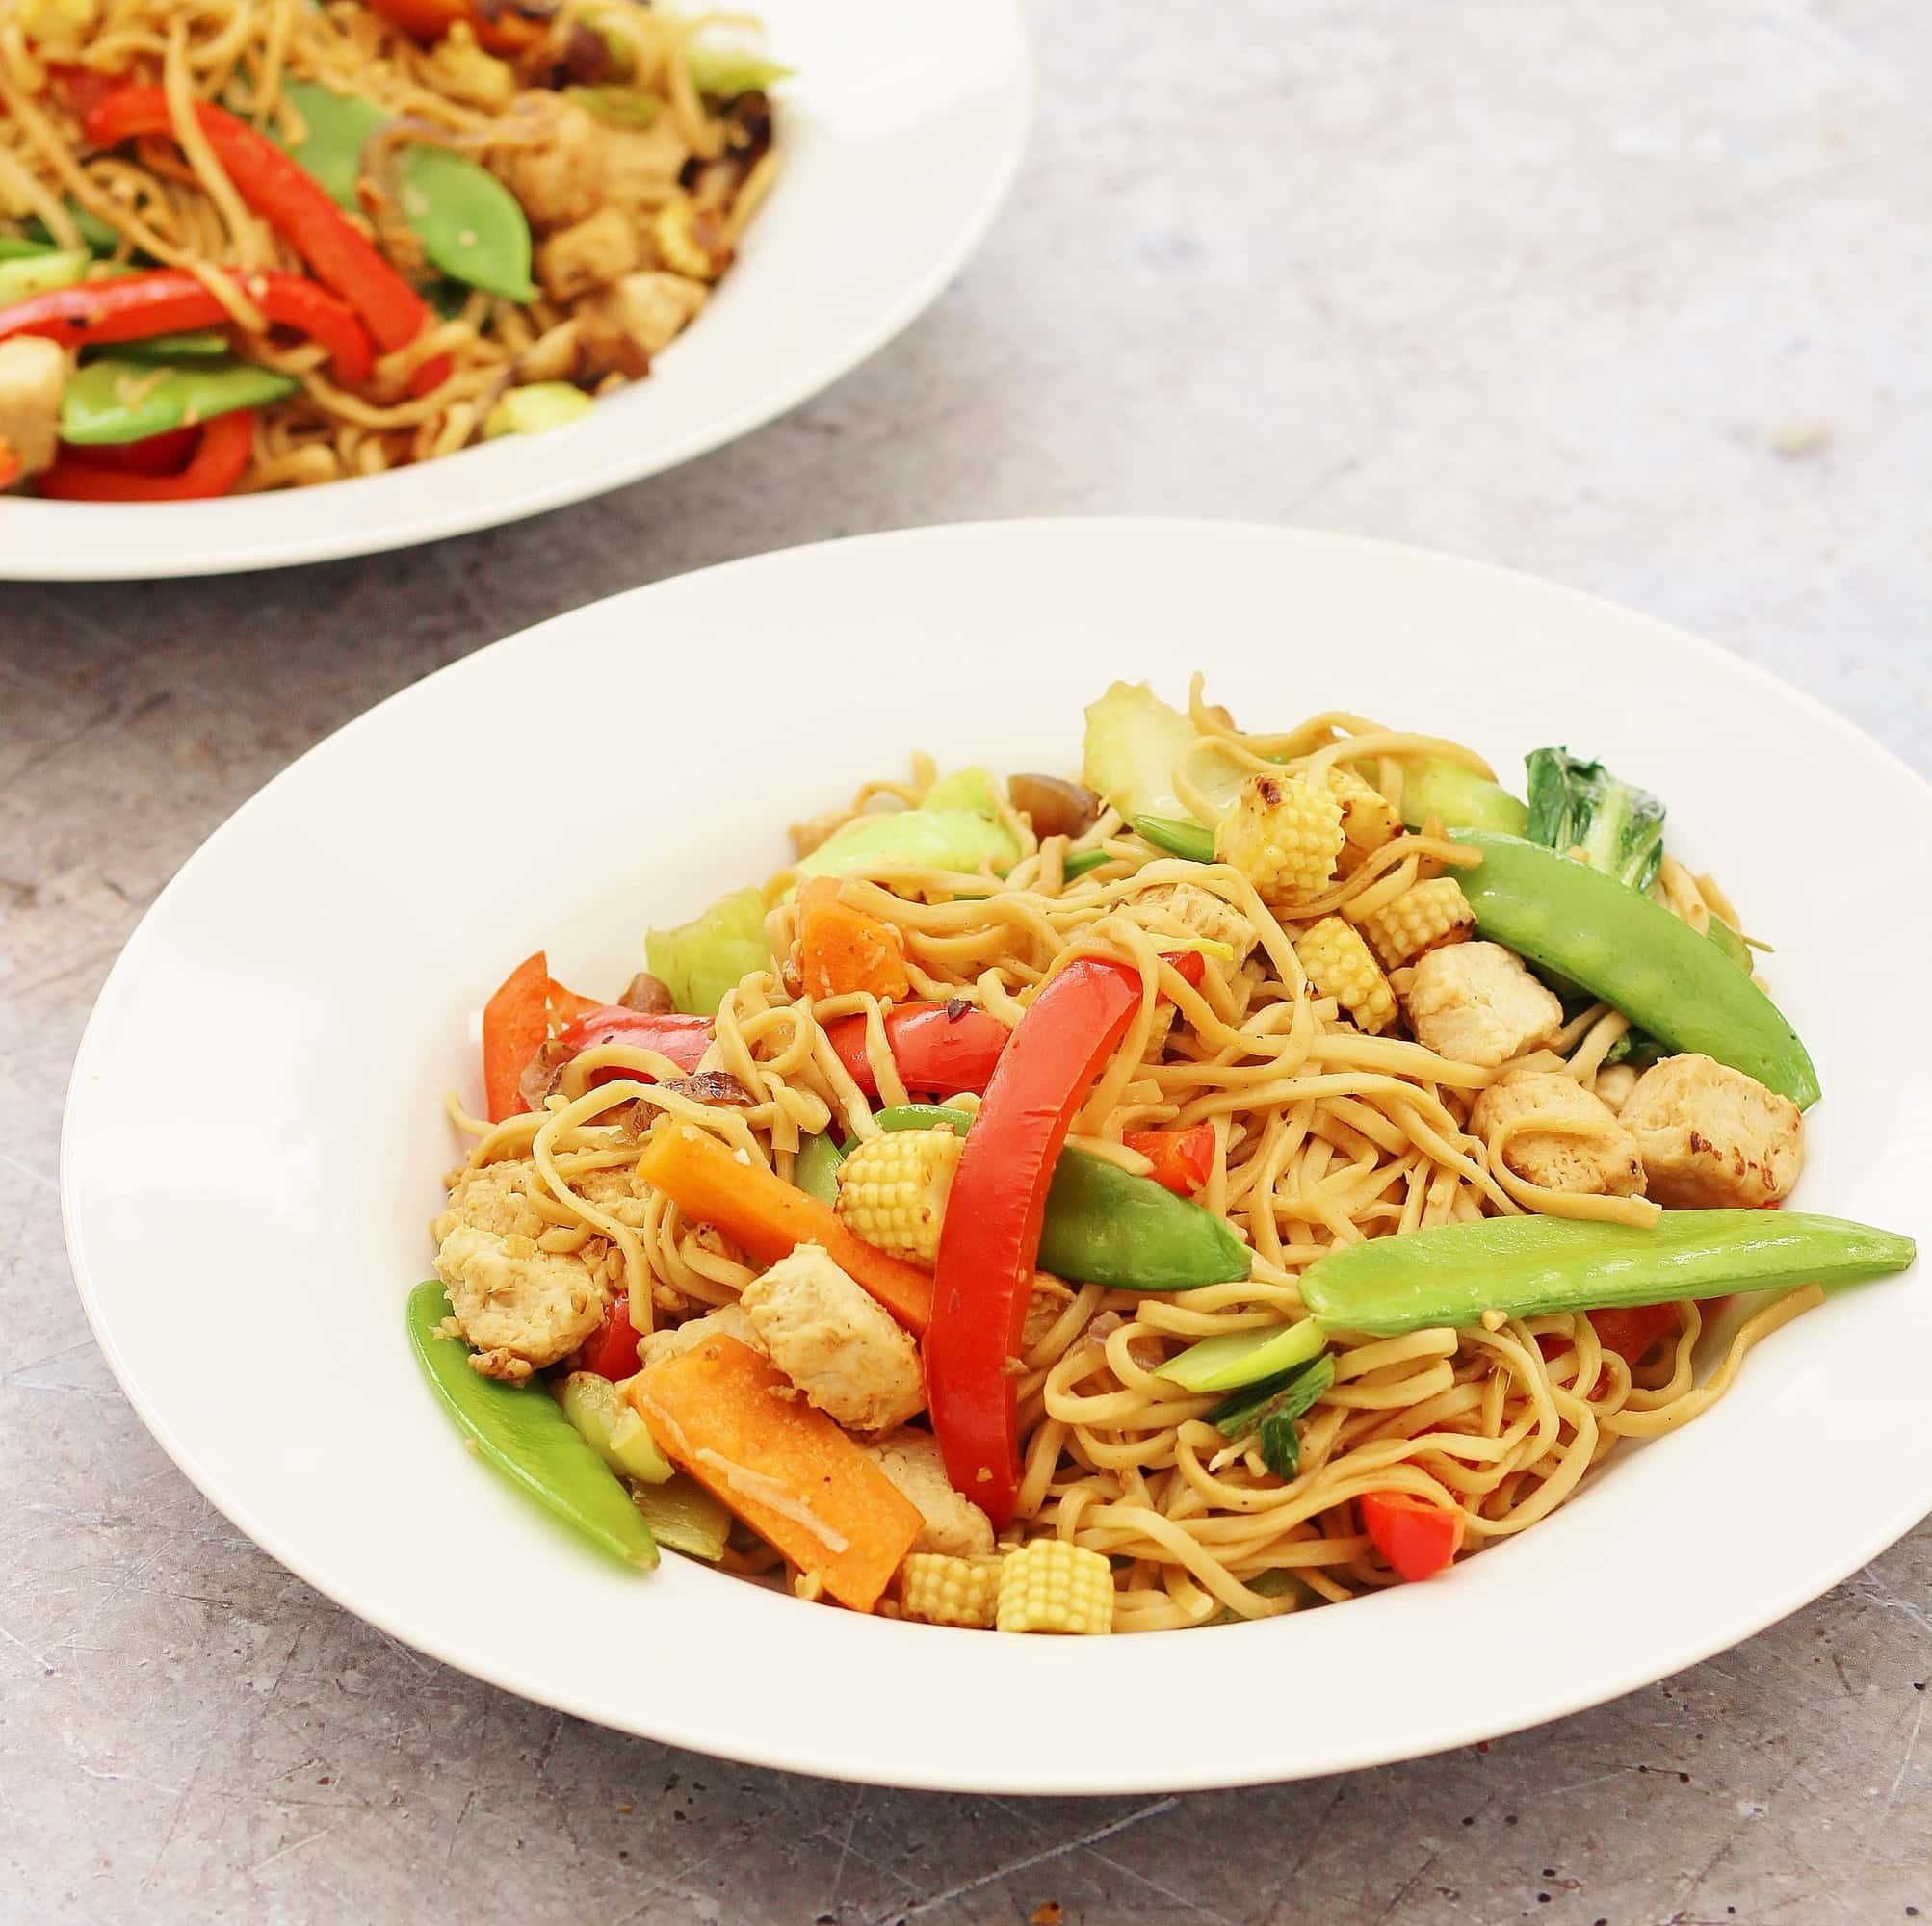 30 Stress Free Easy Camping Food Ideas Your Family Will: Easy Quorn Stir Fry With Noodles